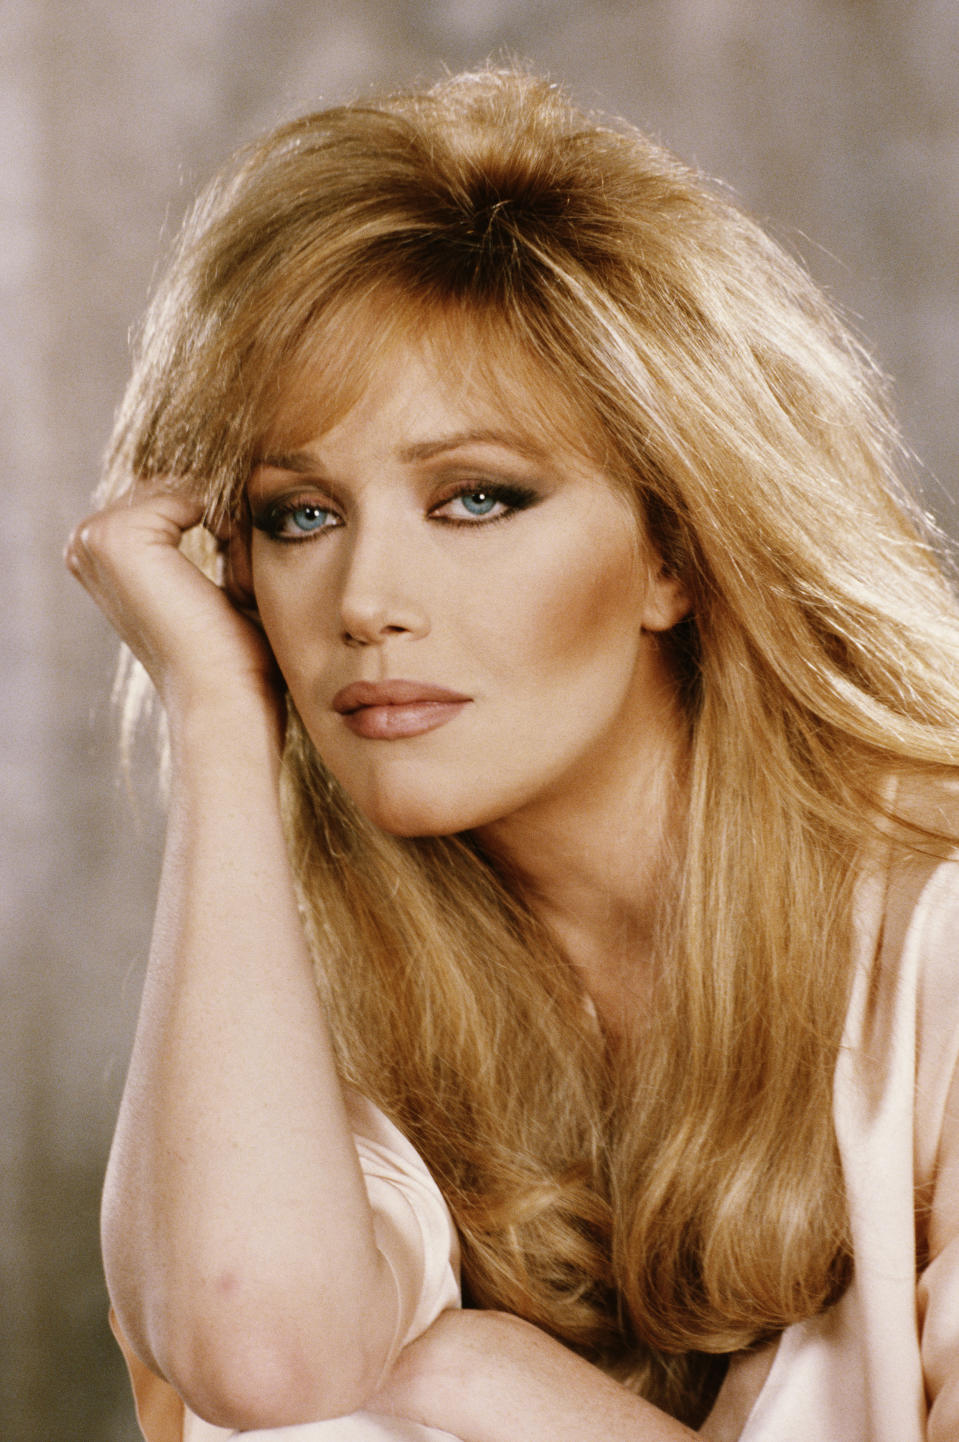 American actress Tanya Roberts stars as Stacey Sutton in the James Bond film 'A View To A Kill', 1984. (Photo by Keith Hamshere/Getty Images)